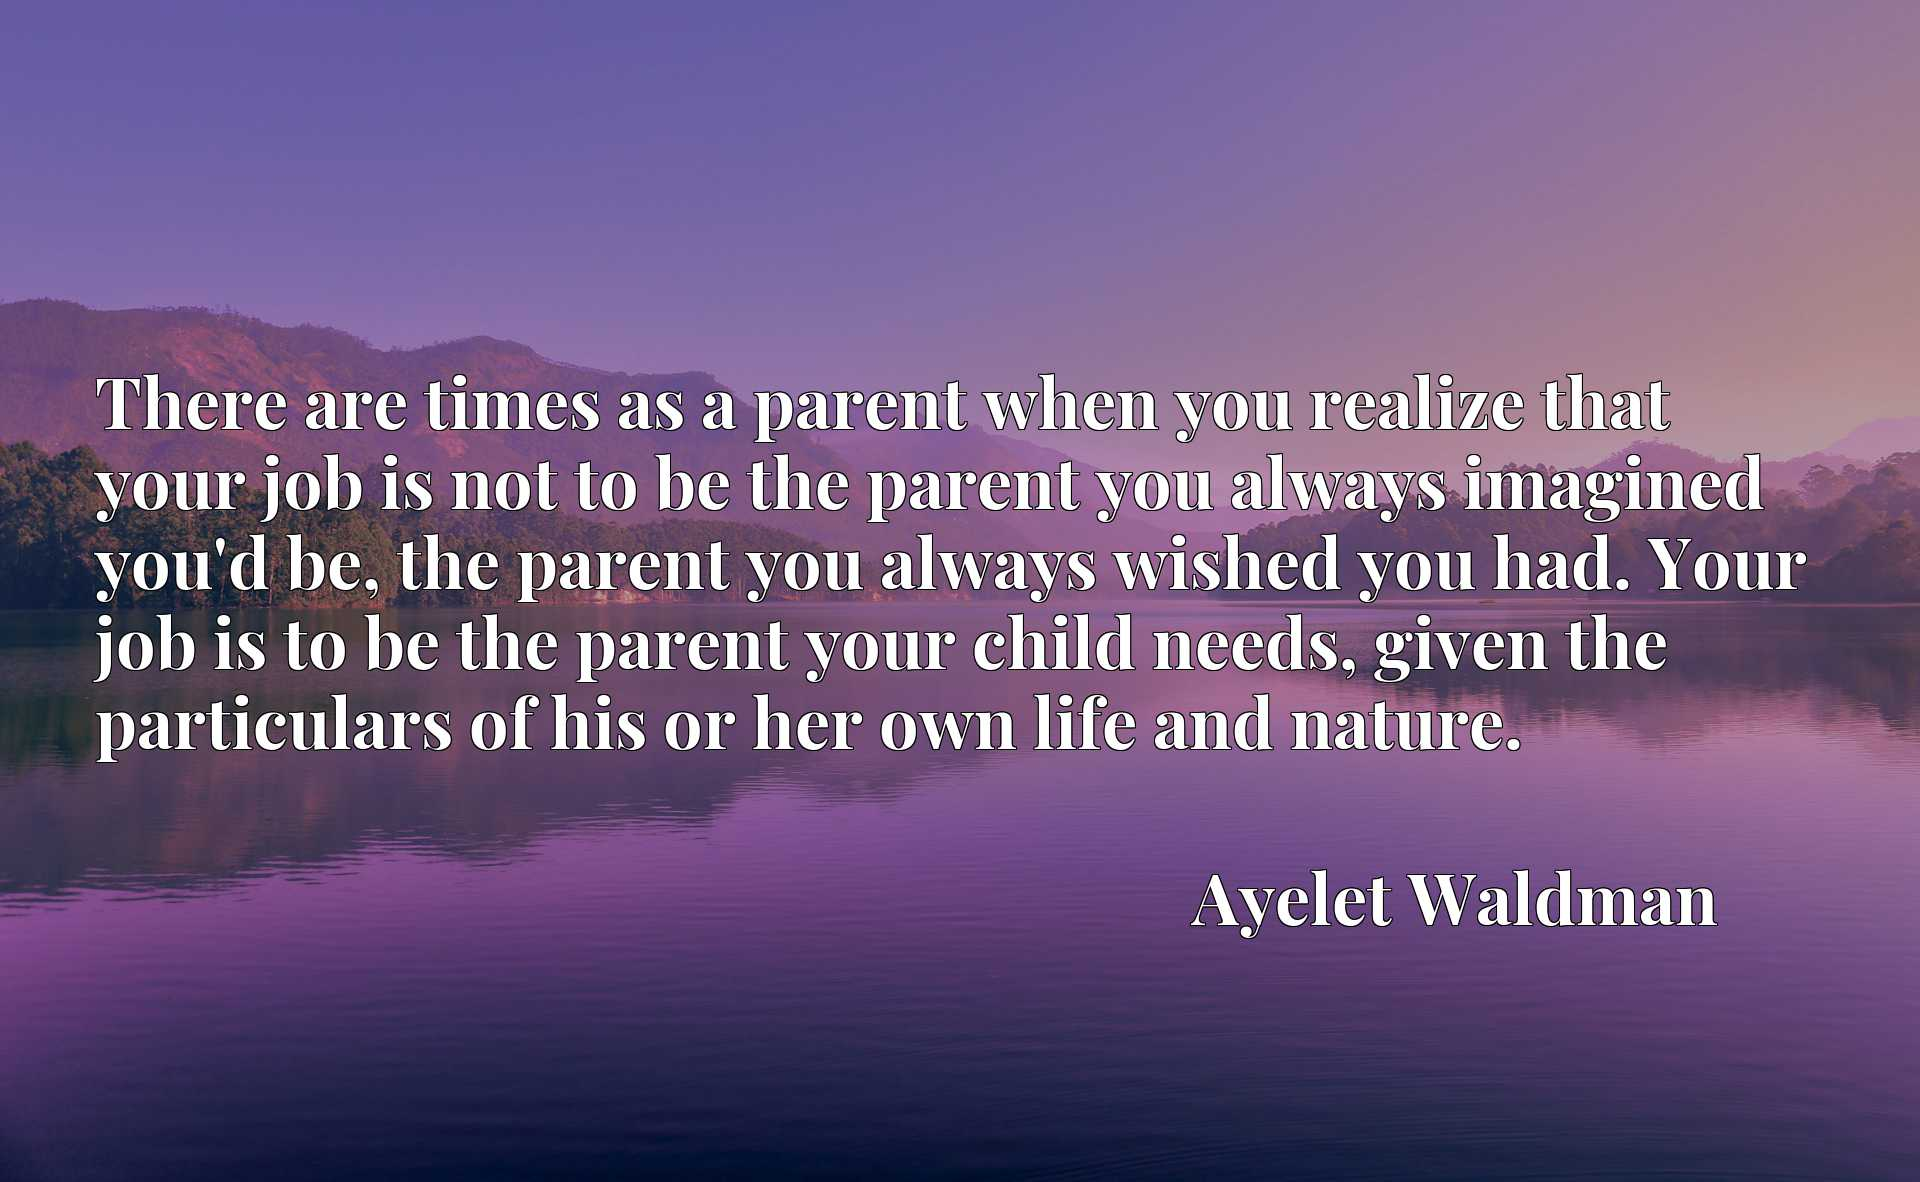 There are times as a parent when you realize that your job is not to be the parent you always imagined you'd be, the parent you always wished you had. Your job is to be the parent your child needs, given the particulars of his or her own life and nature.